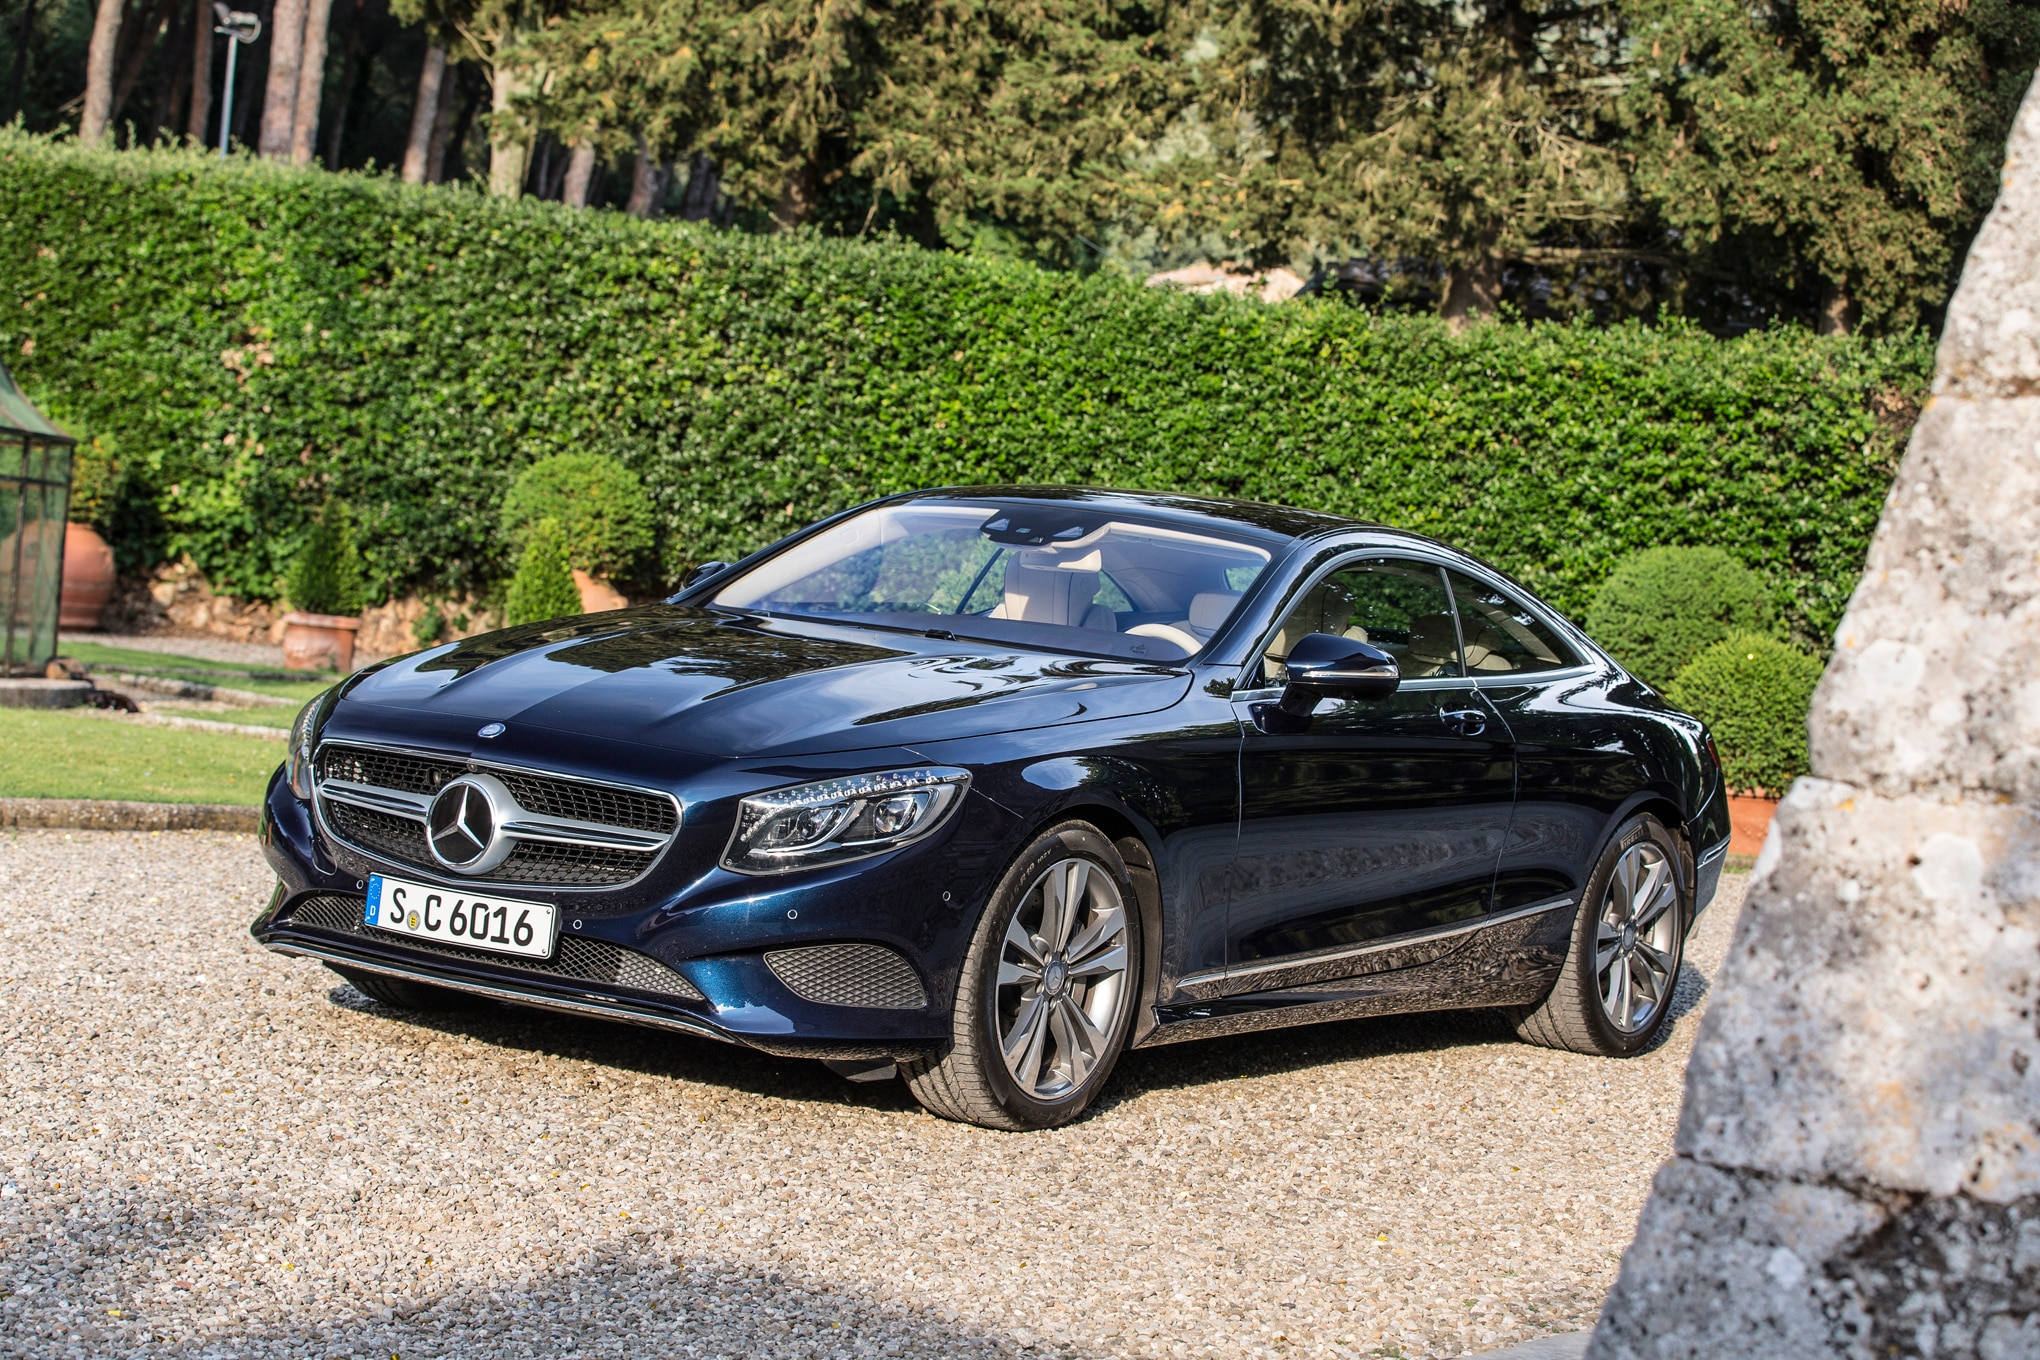 2015 Mercedes Benz S500 4Matic Coupe Promo2